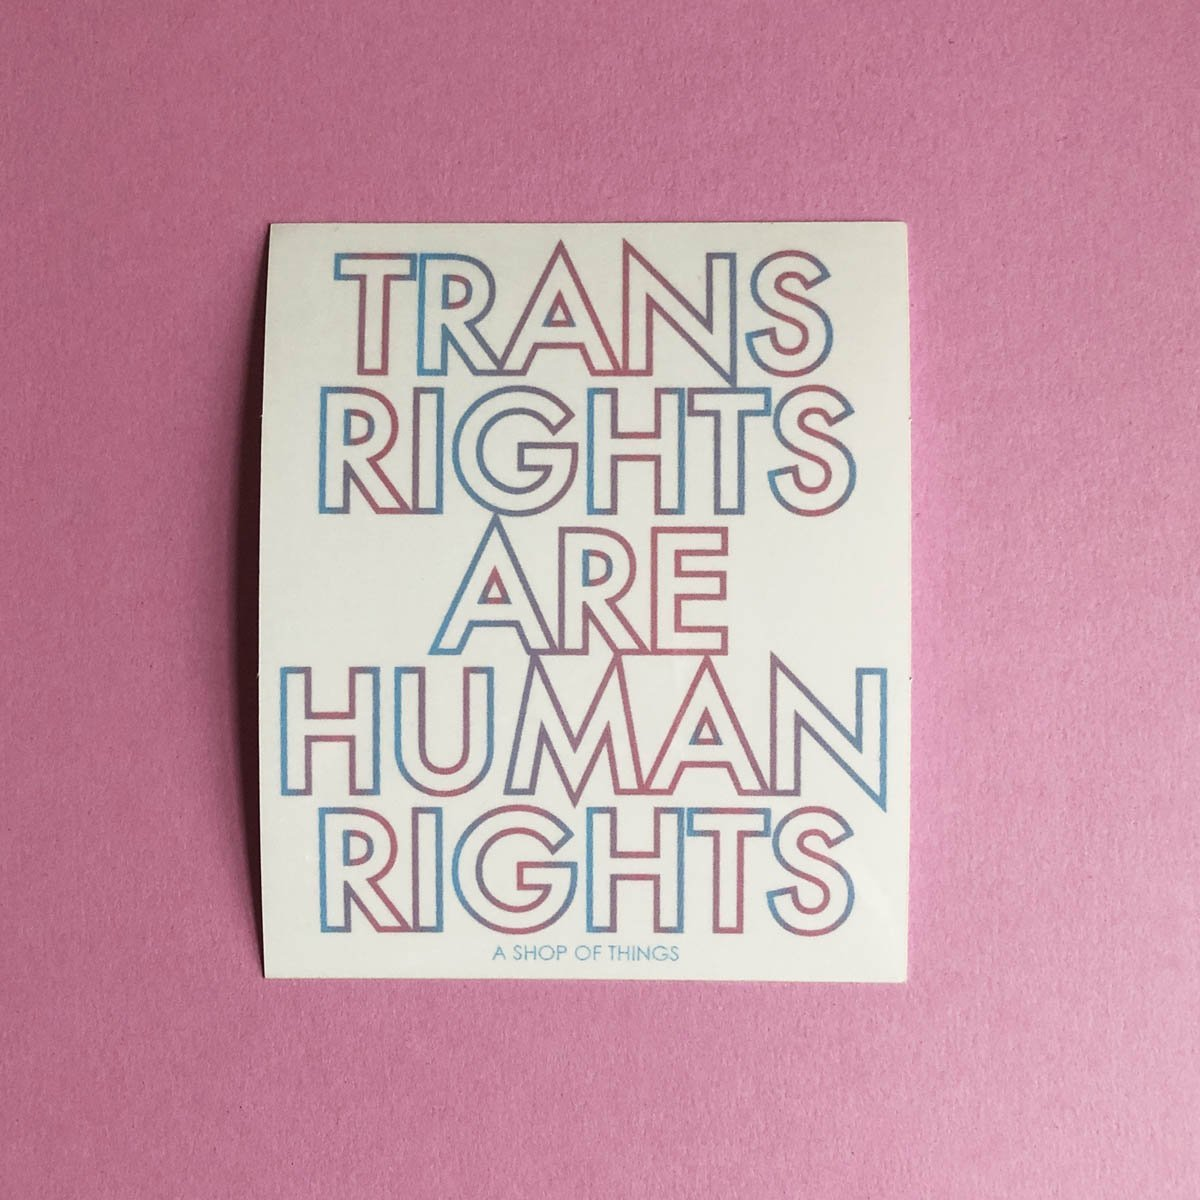 A Shop of Things Trans Rights Stickers